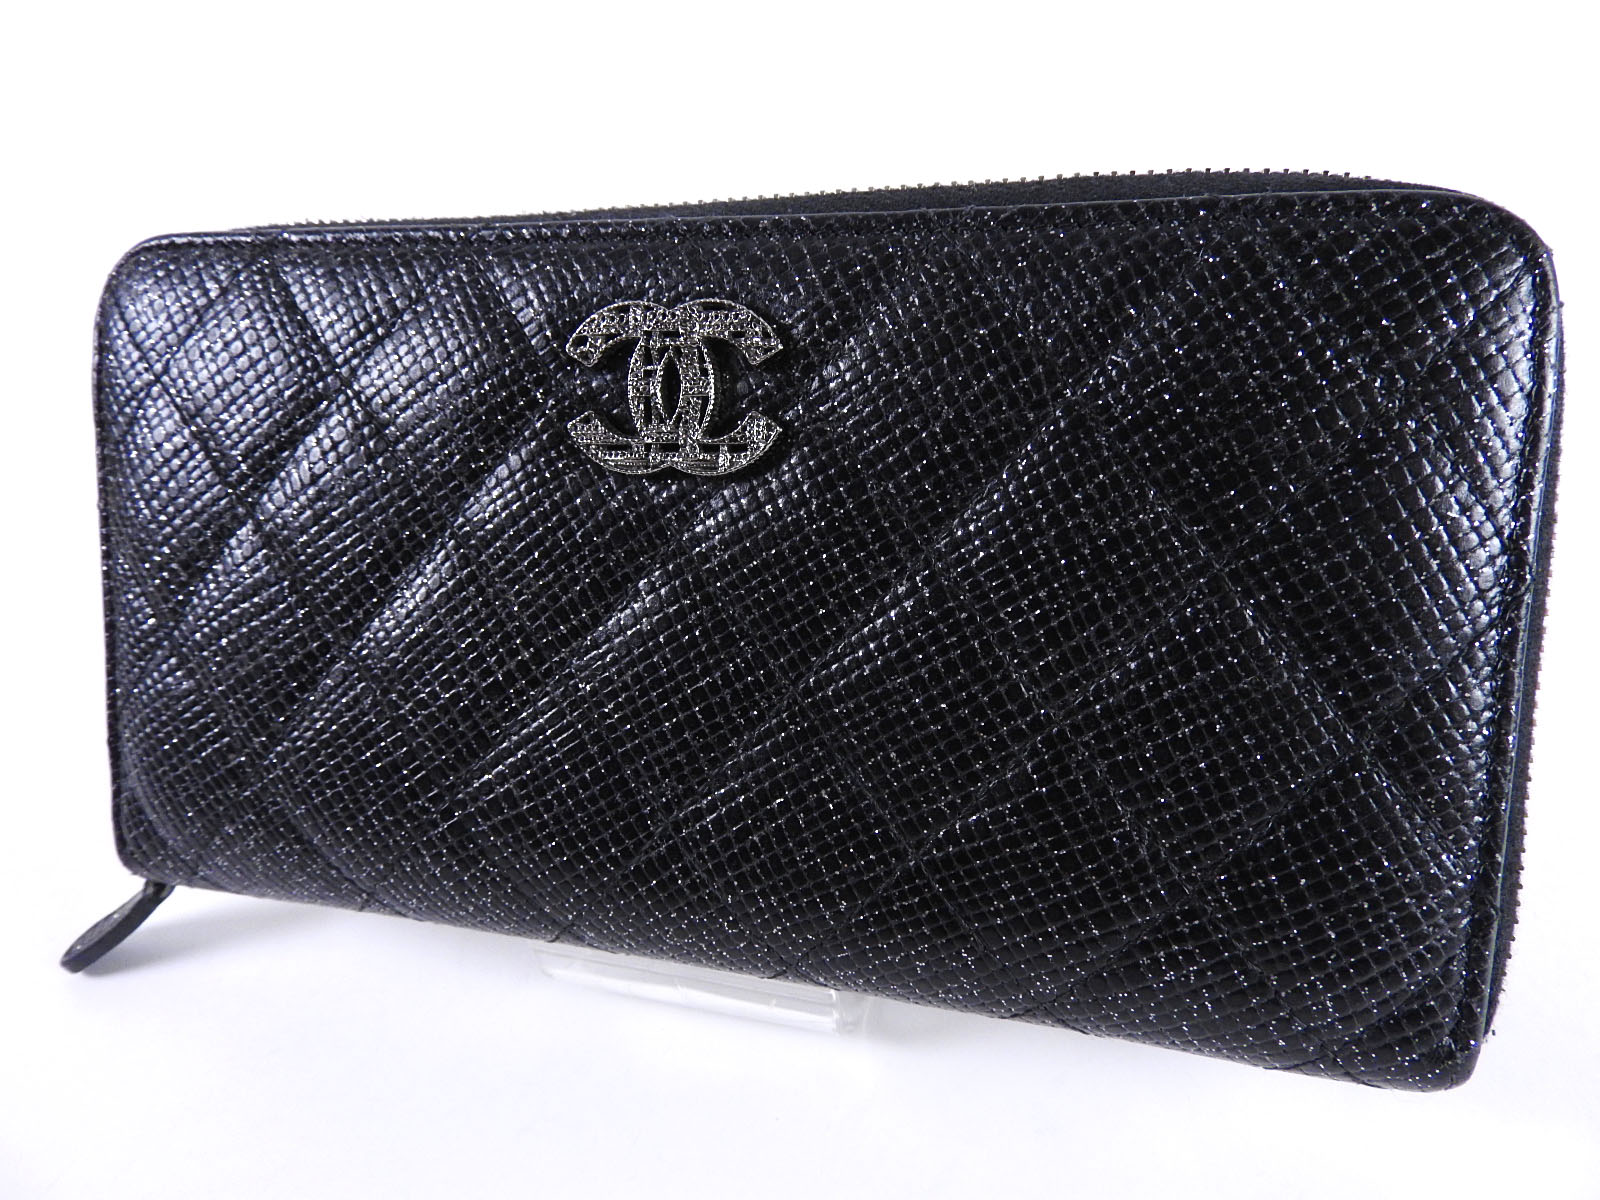 83b0f3a333509f Chanel Long Chain Wallet | Stanford Center for Opportunity Policy in ...